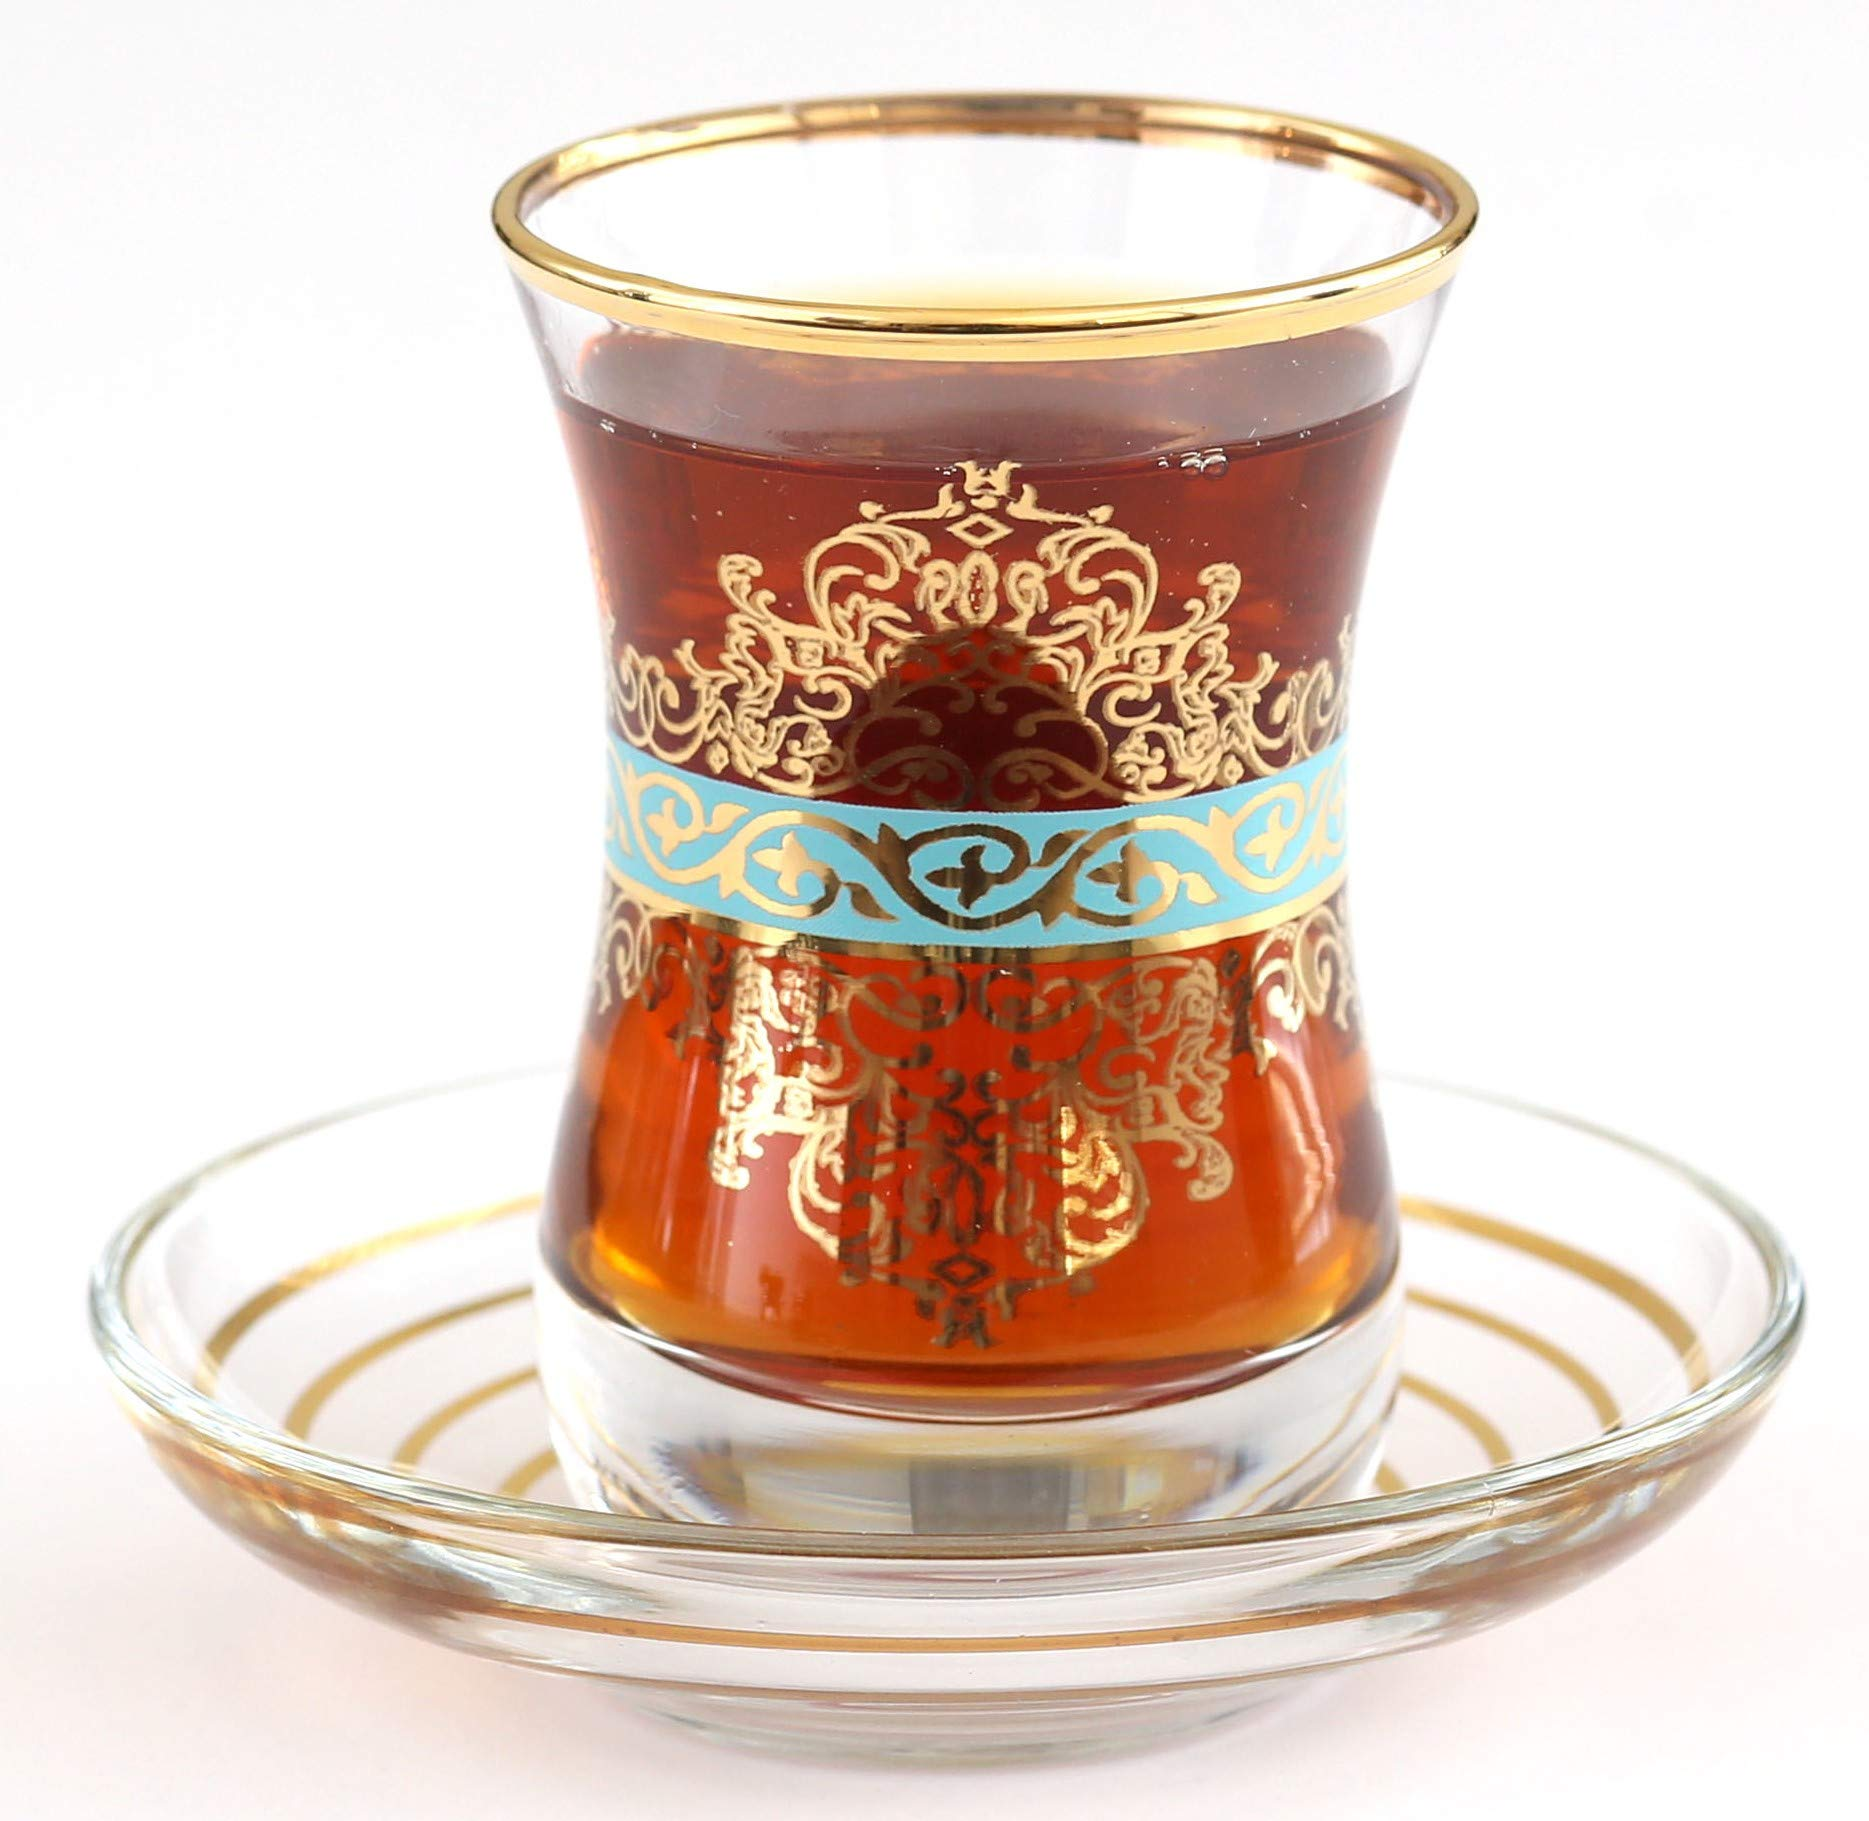 Top Quality Gold Plated Turkish Tea Glasses with Saucers Set of 6 - IRIS